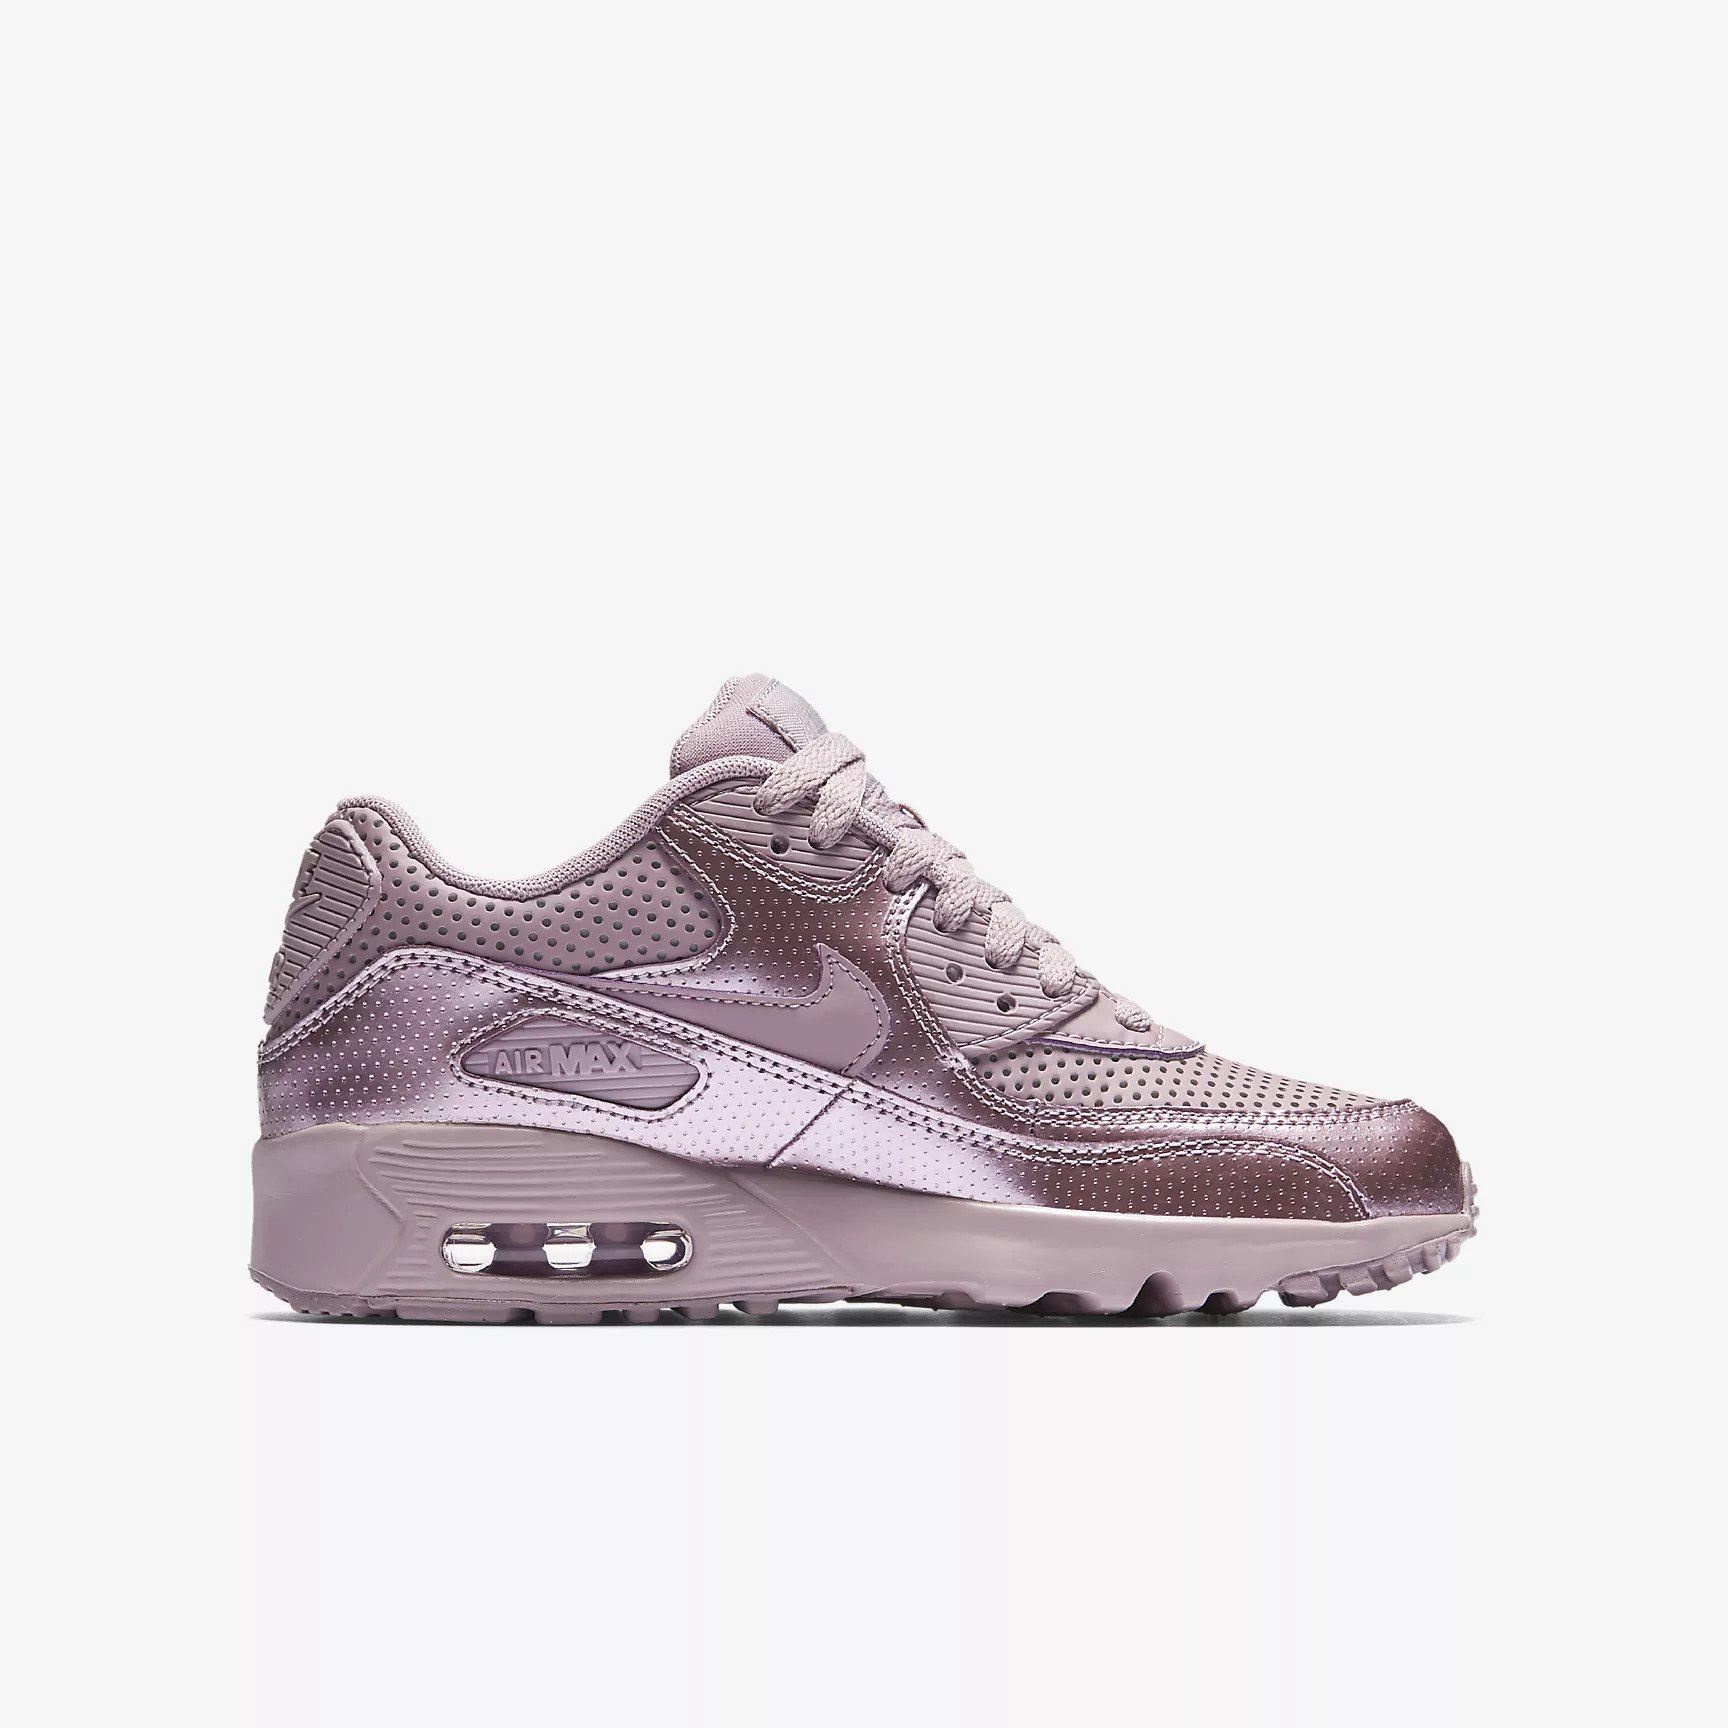 Details about Nike Air Max 90 SE LTR (GS) Elemental Rose 859633 600 Girls UK 3 5.5